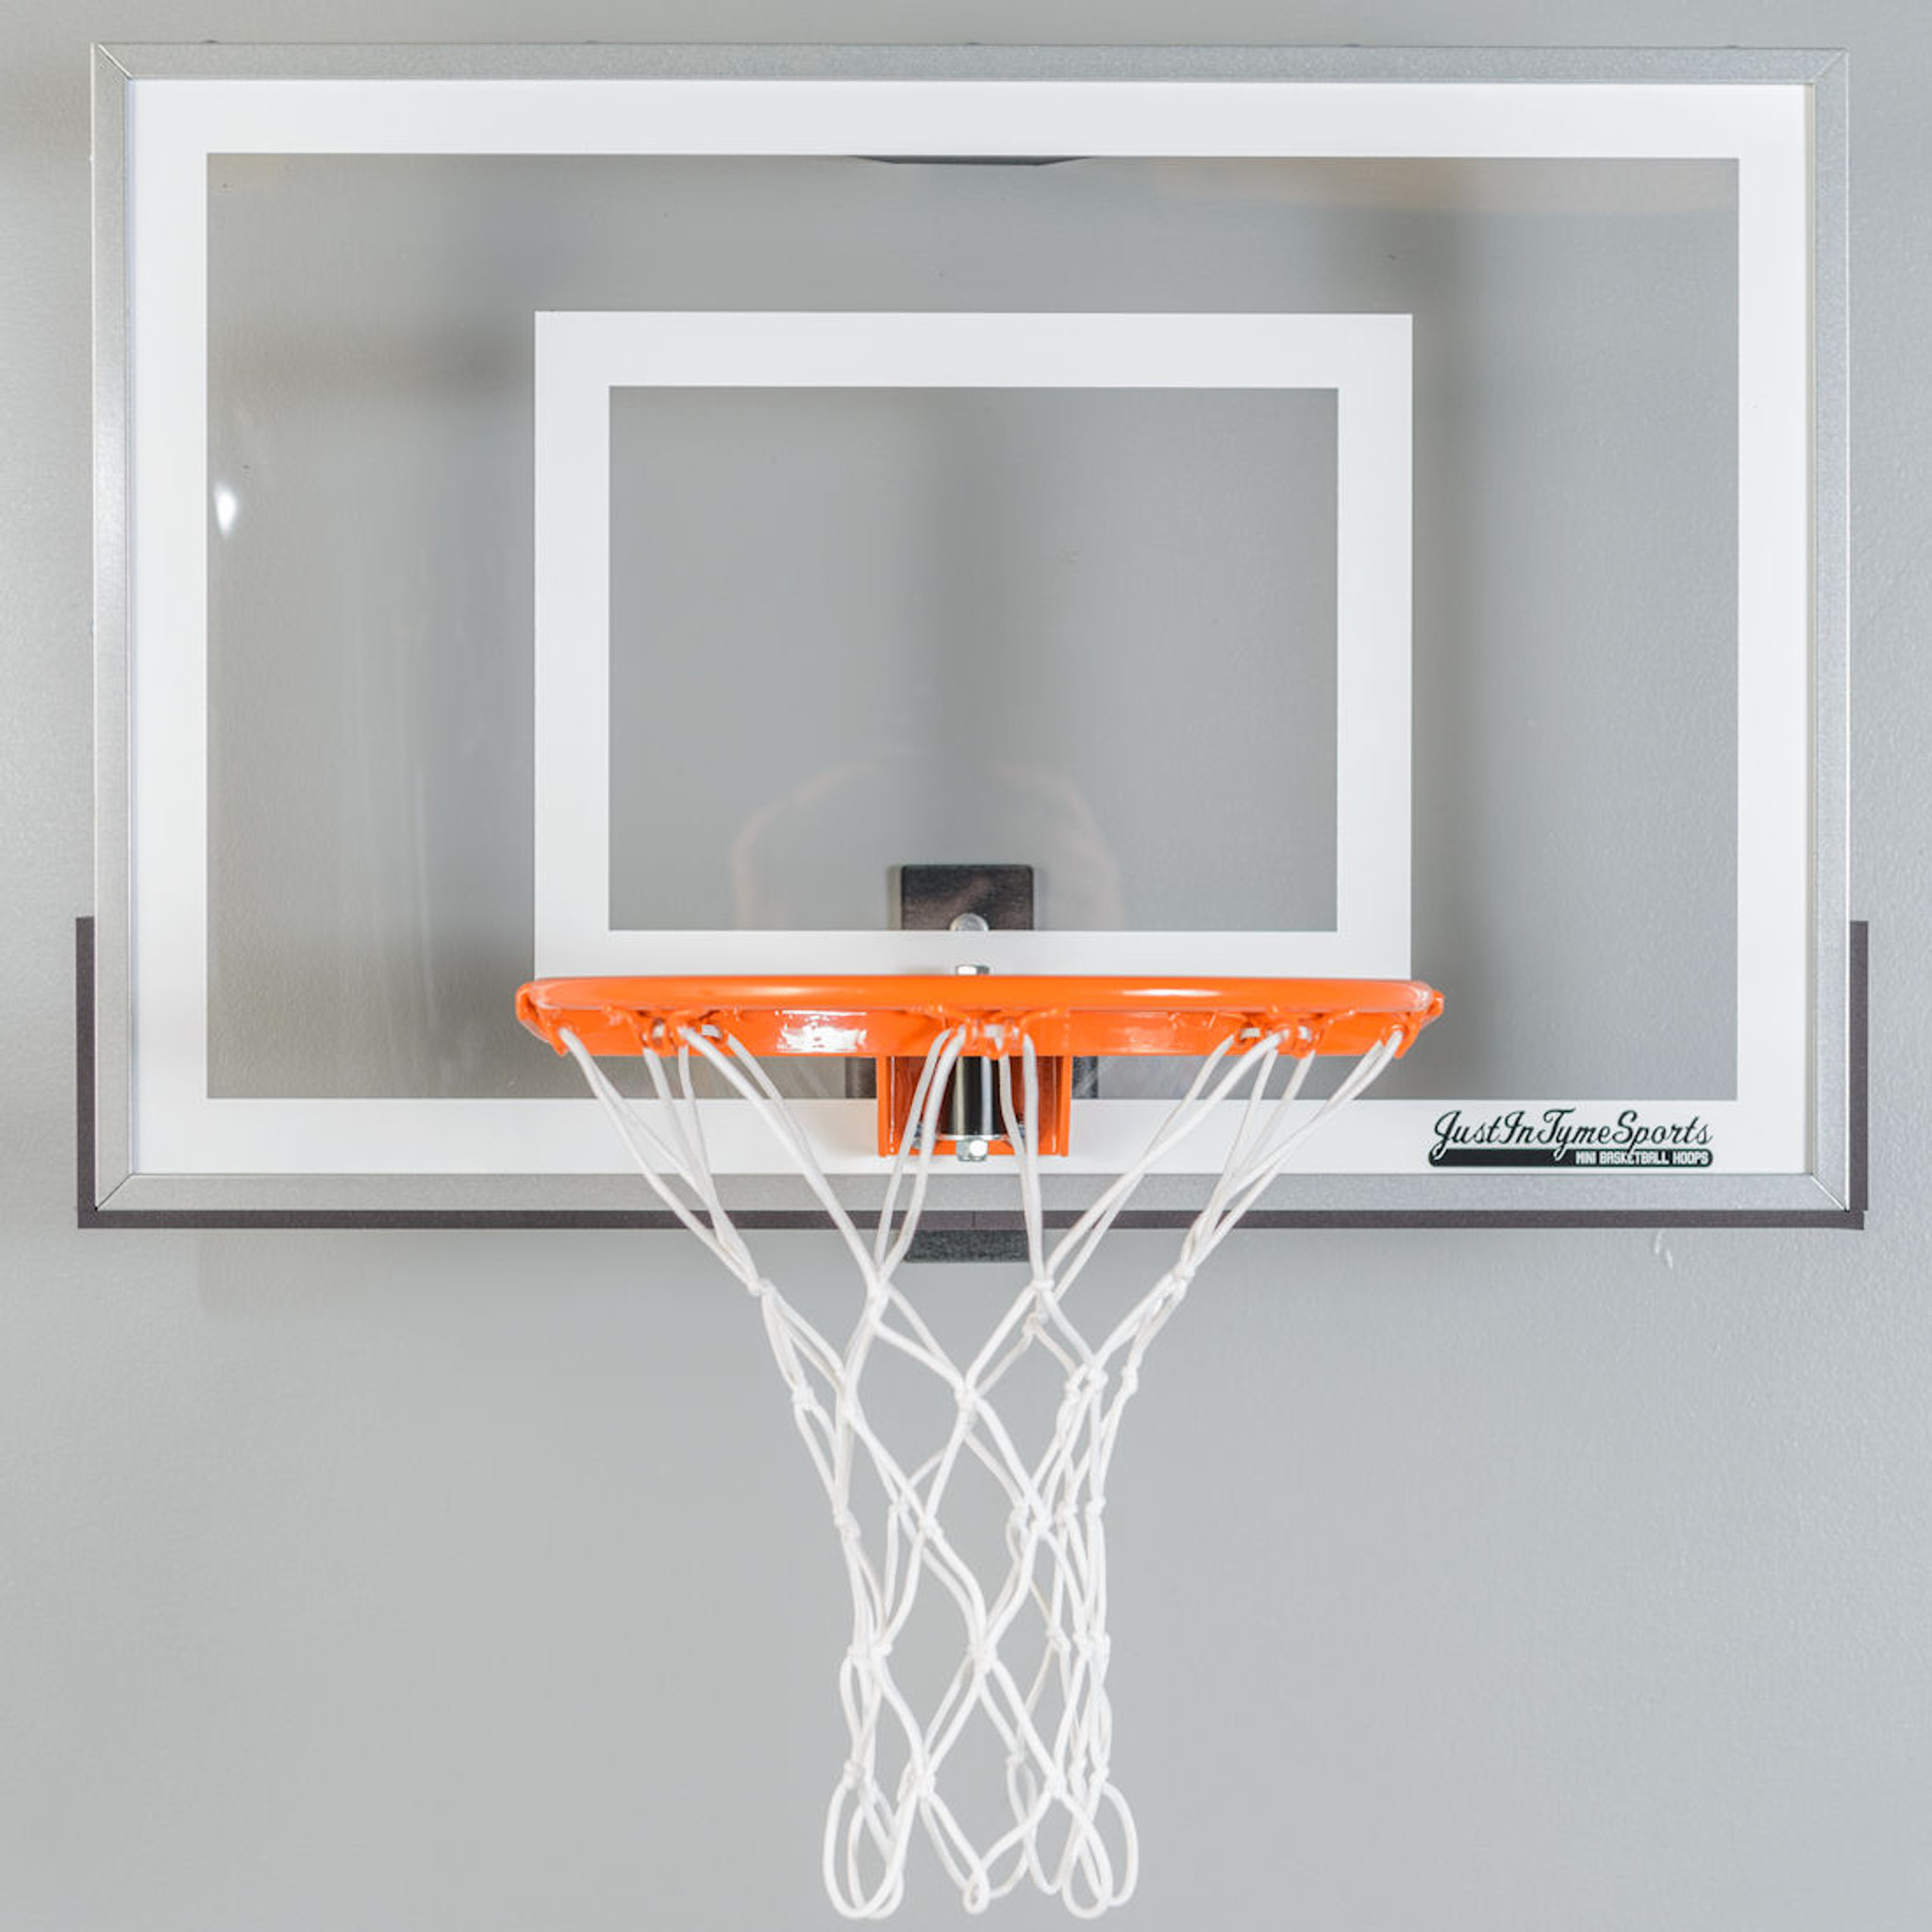 Mini Pro 2 0 Basketball Hoop Set Ltp Justintymesports